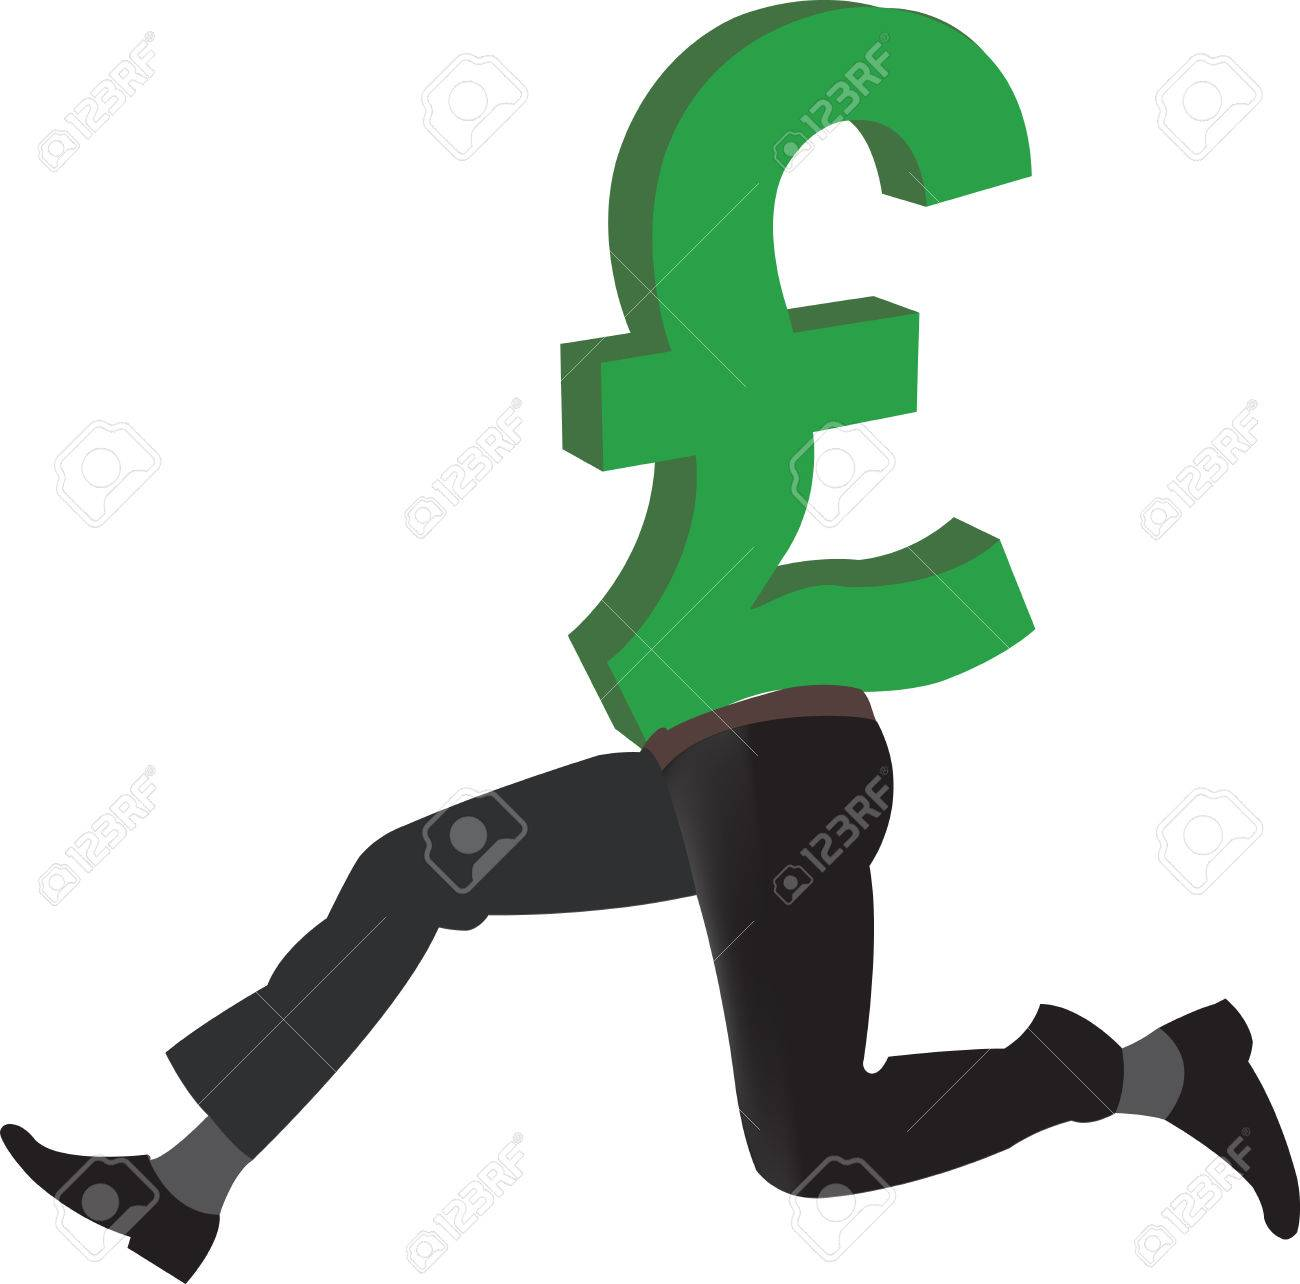 British Pound Currency Symbol With Legs Royalty Free Cliparts